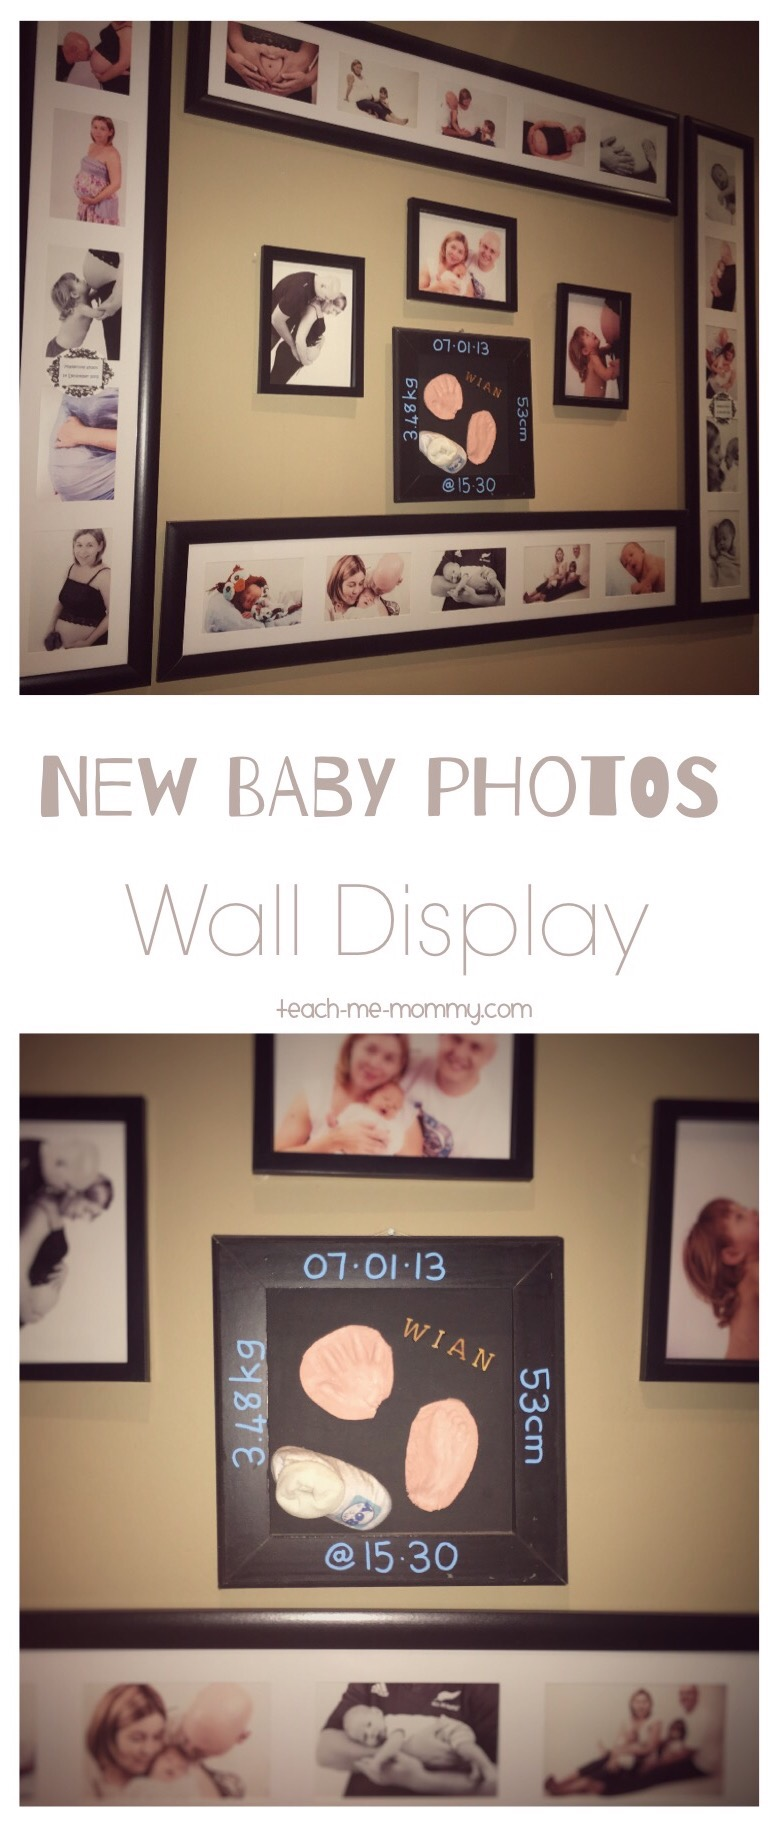 New Baby photo wall display